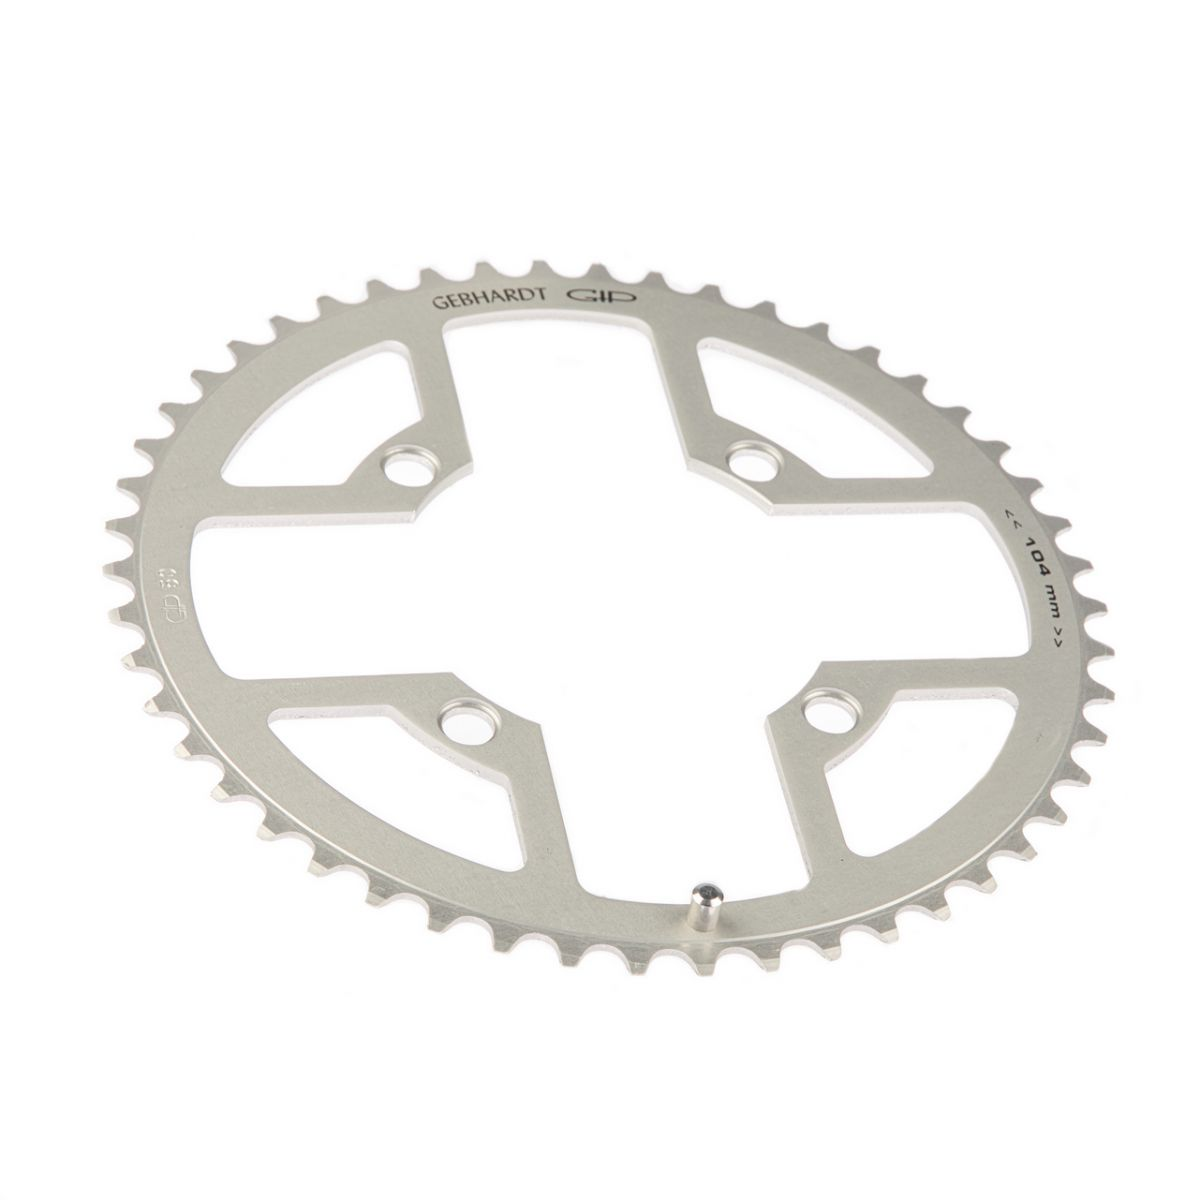 gebhardt chainring classic bcd 104 mm 4hole 44t silver